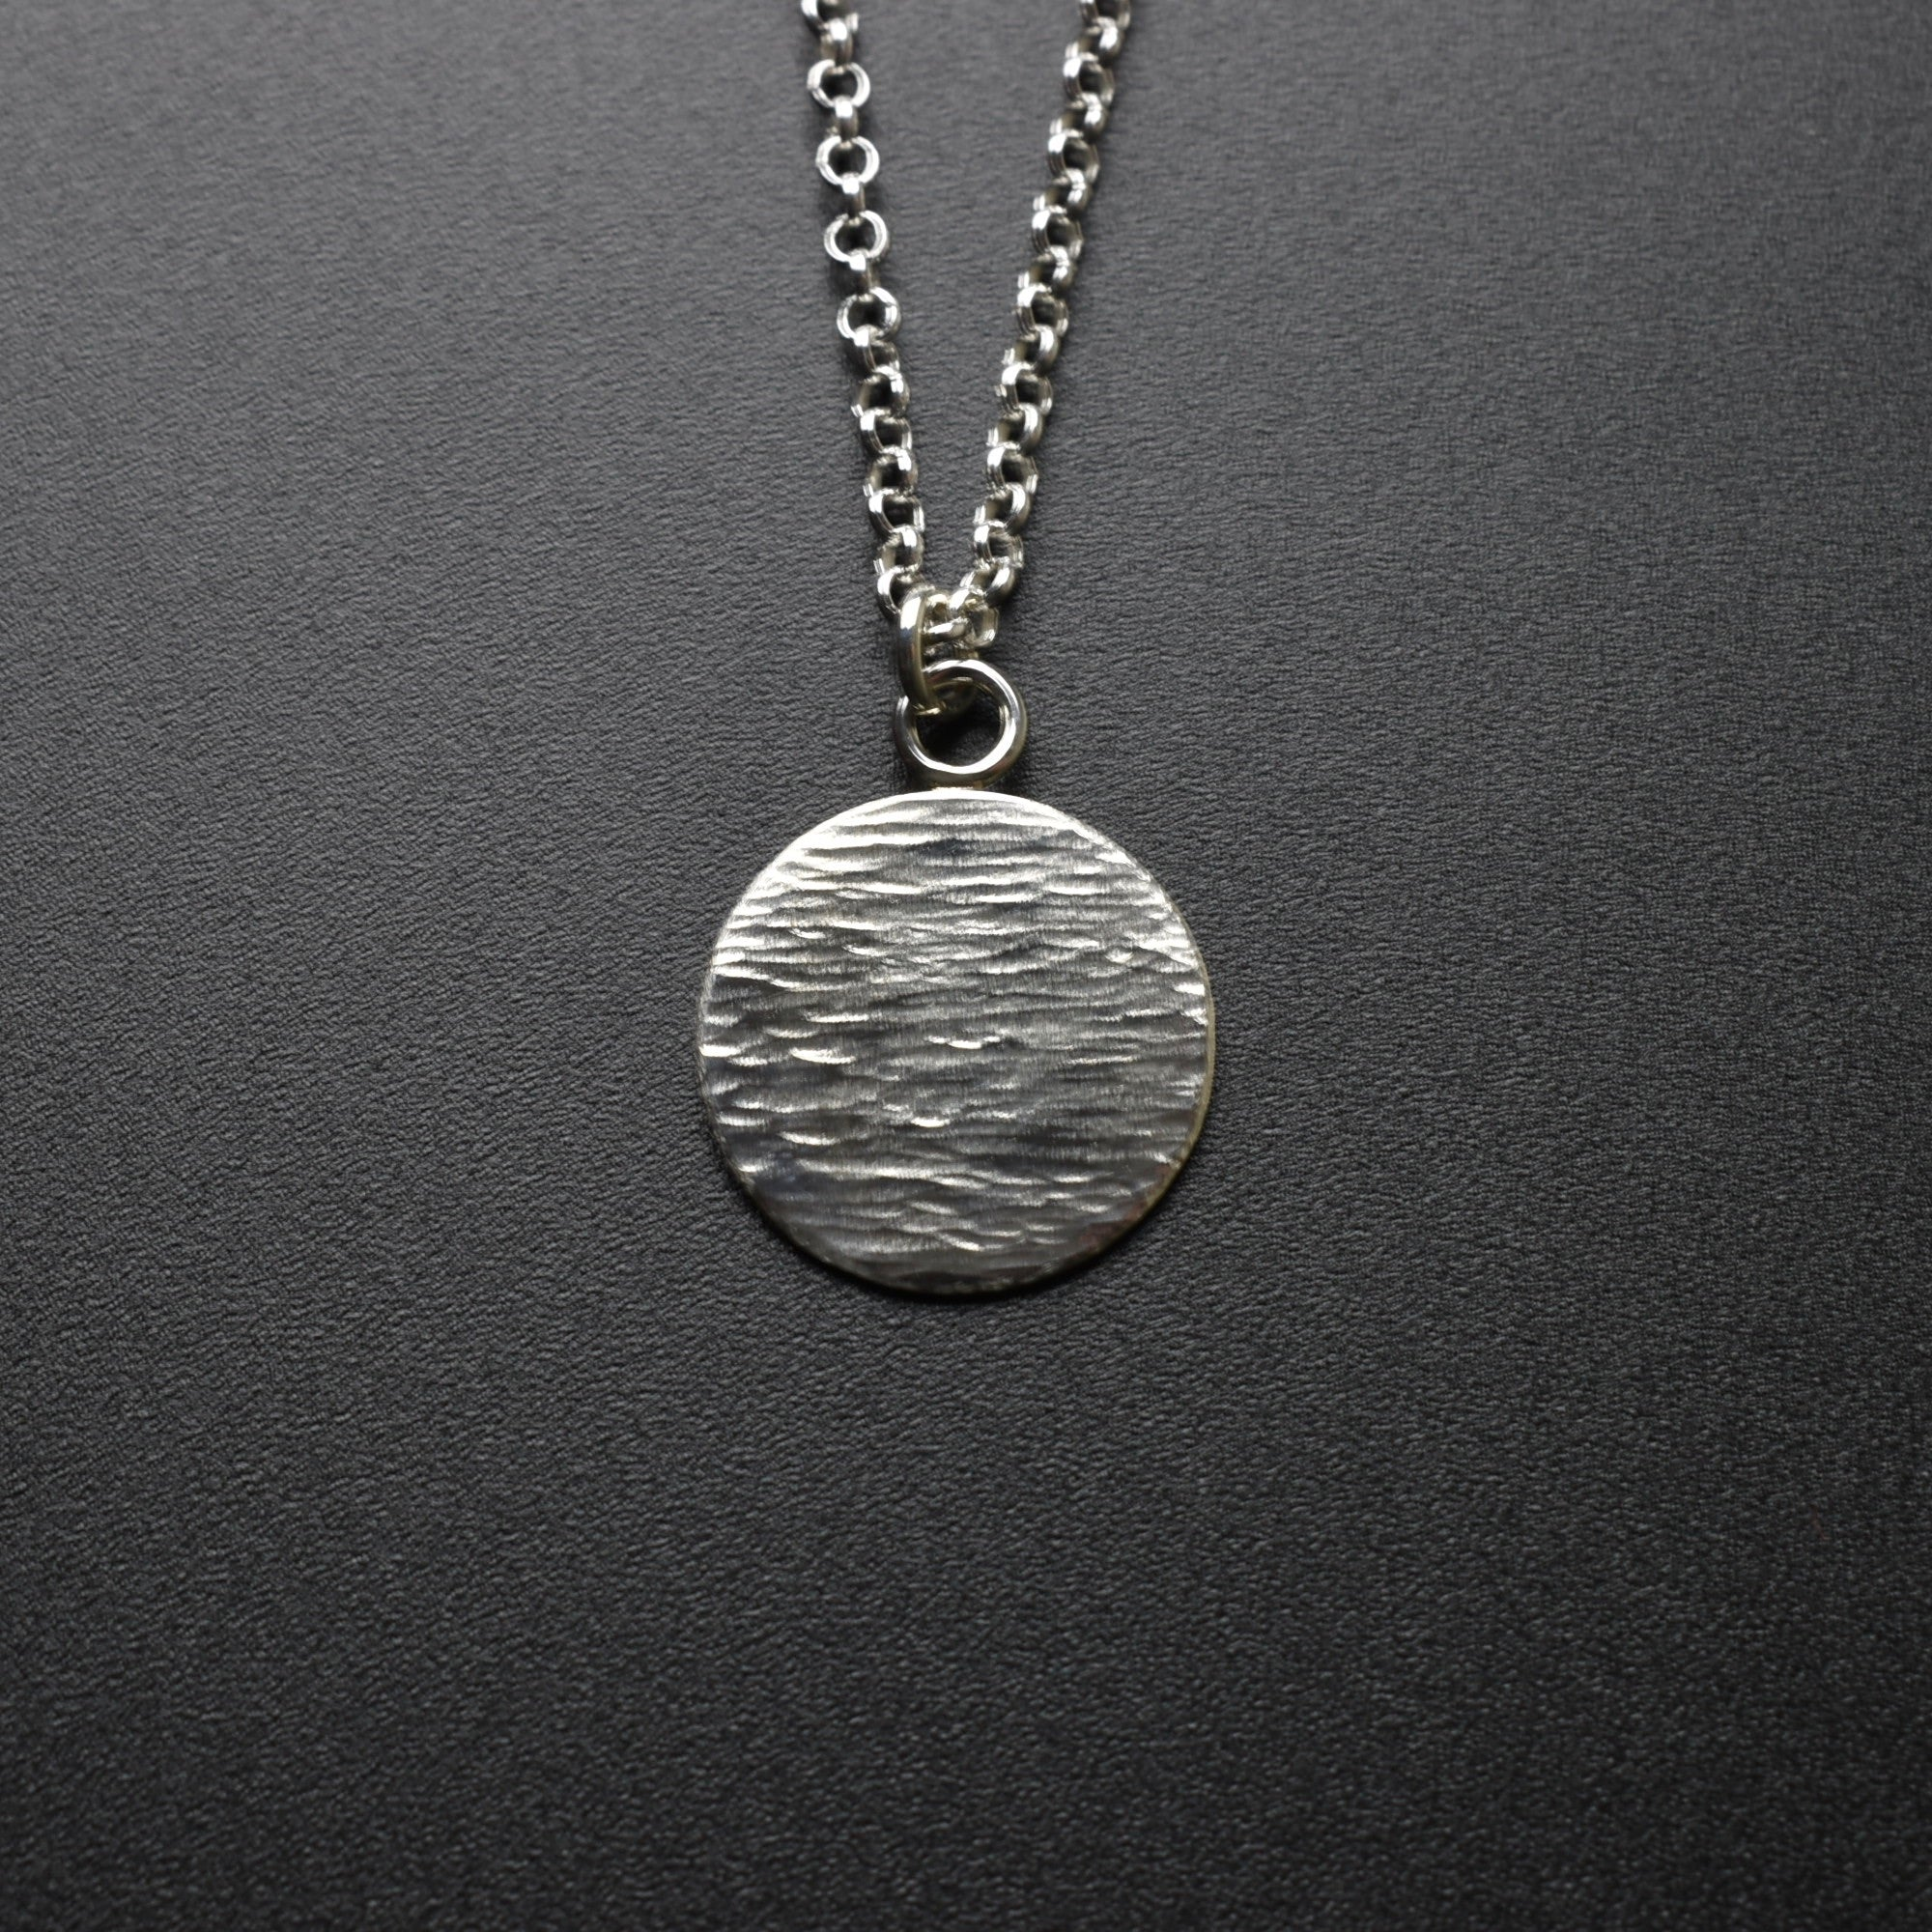 Forged Disc Pendant & Chain